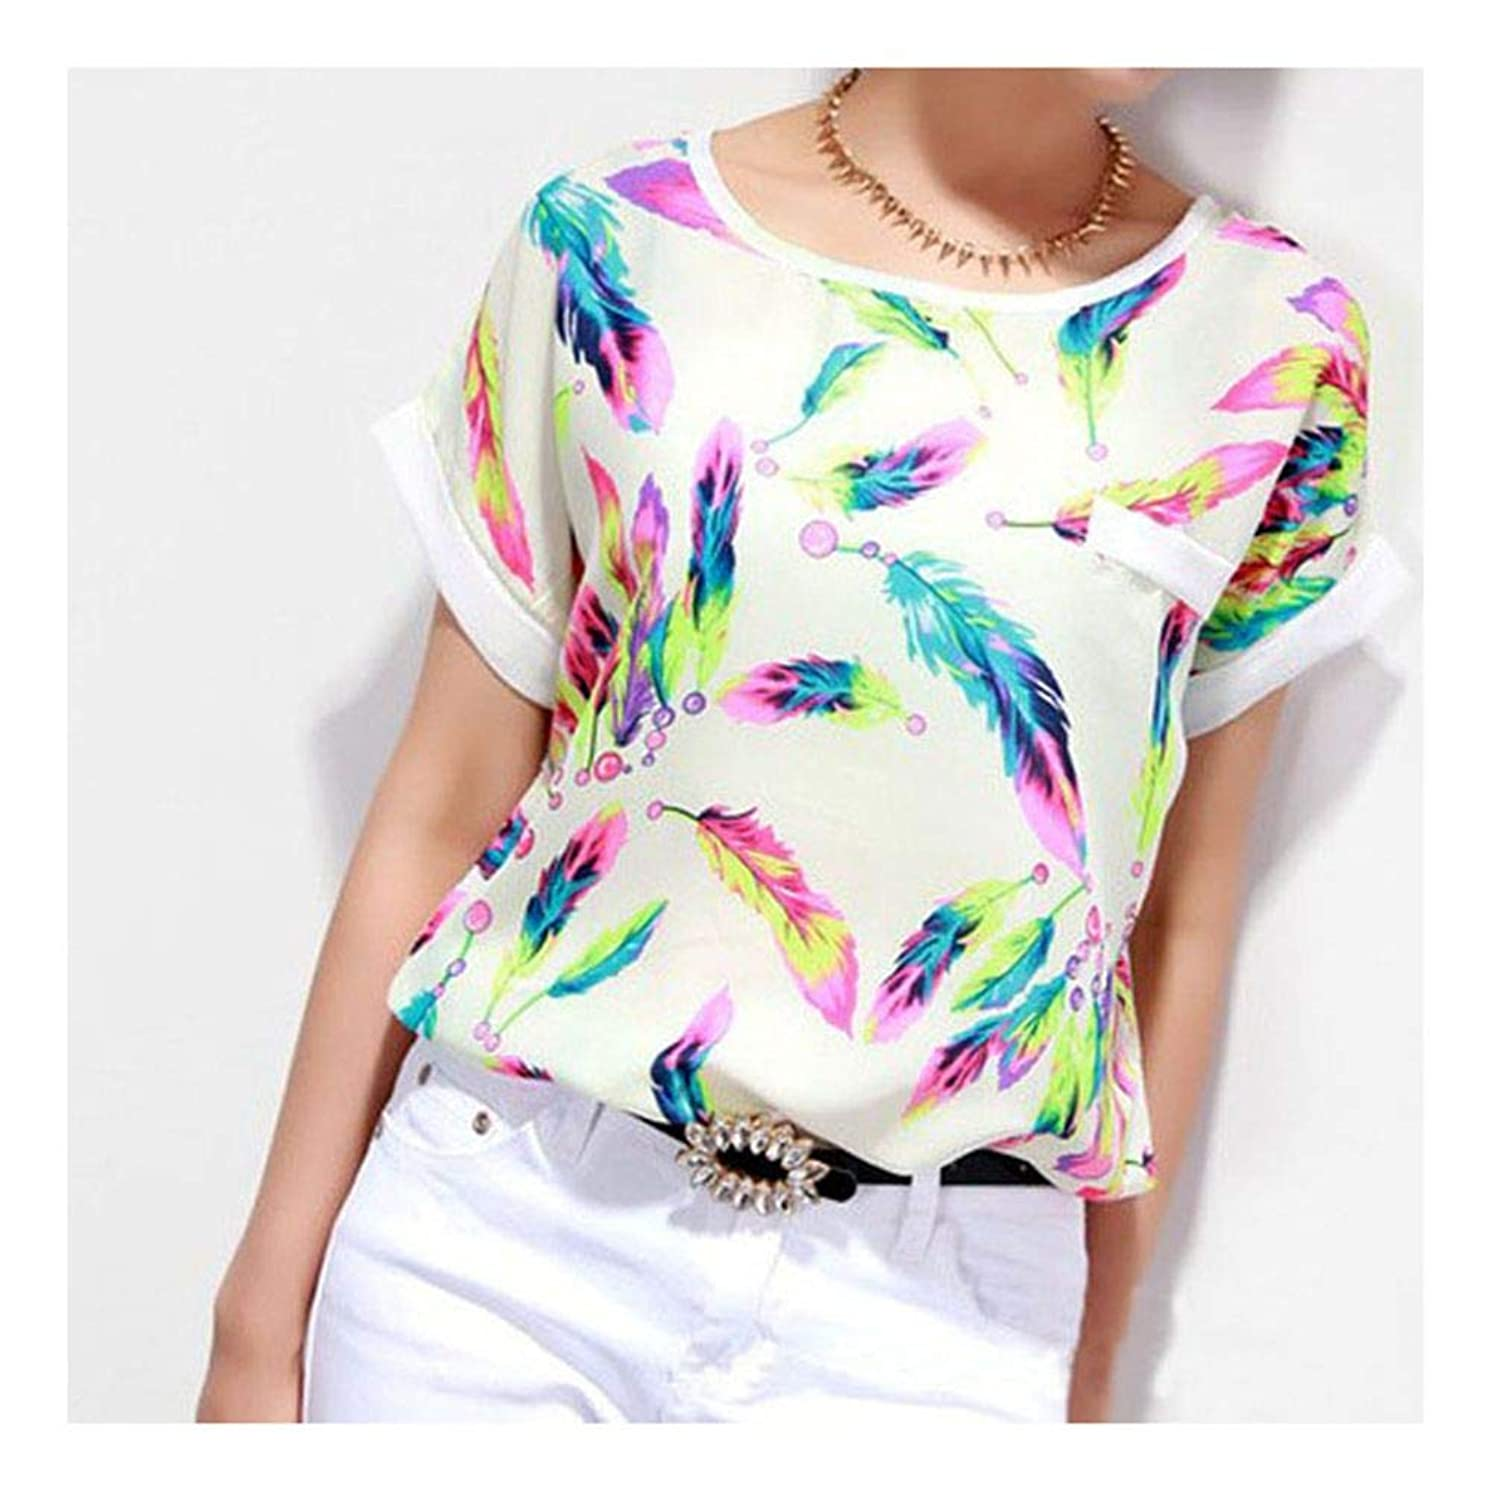 Womens Shirts Short Sleeve Plus Size Floral Print Loose Casual Tunic Tops Blouse T-Shirt for Women Ladies Teen Girls